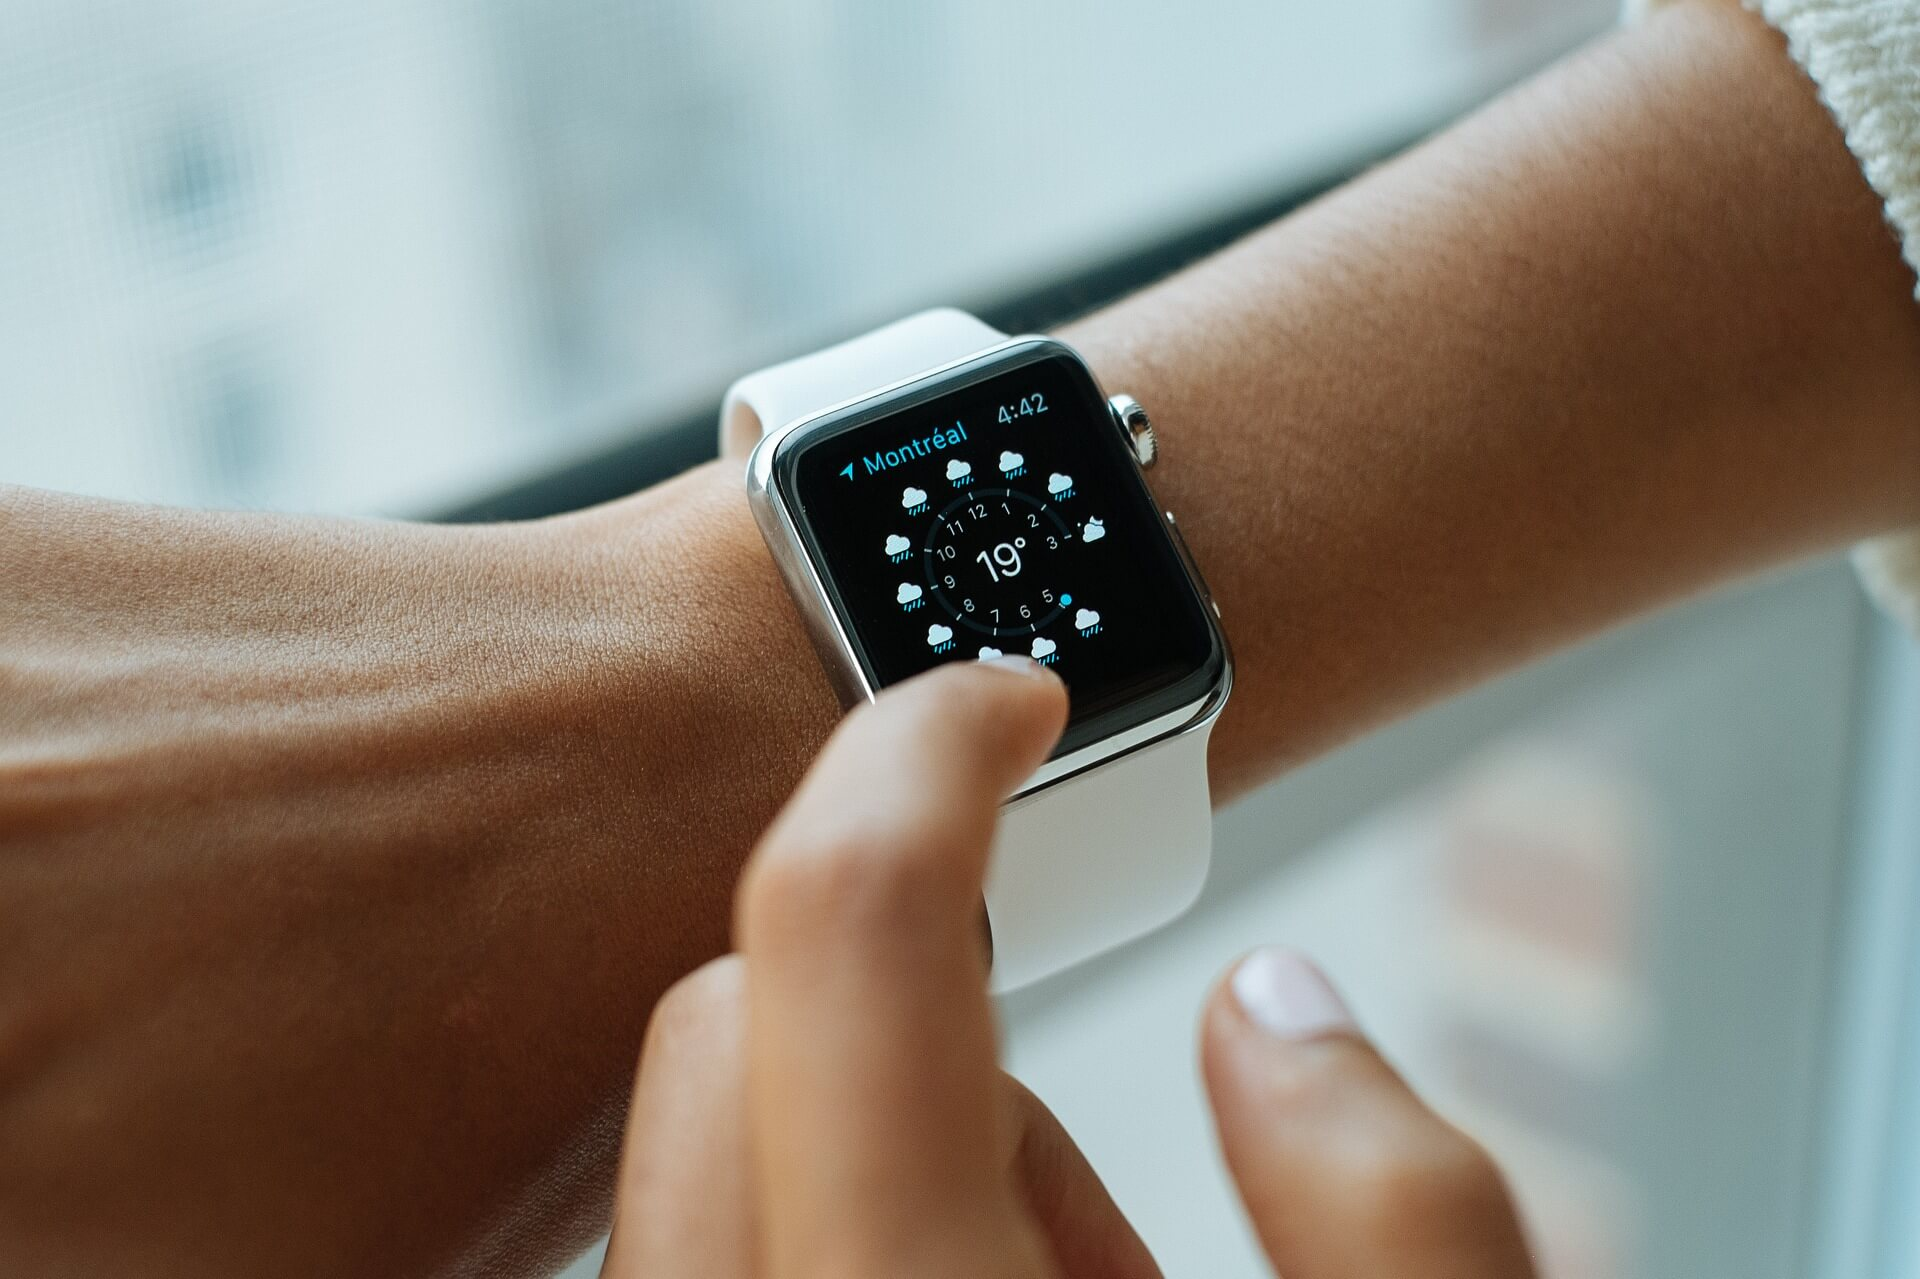 iWatch-for-android-wear-start